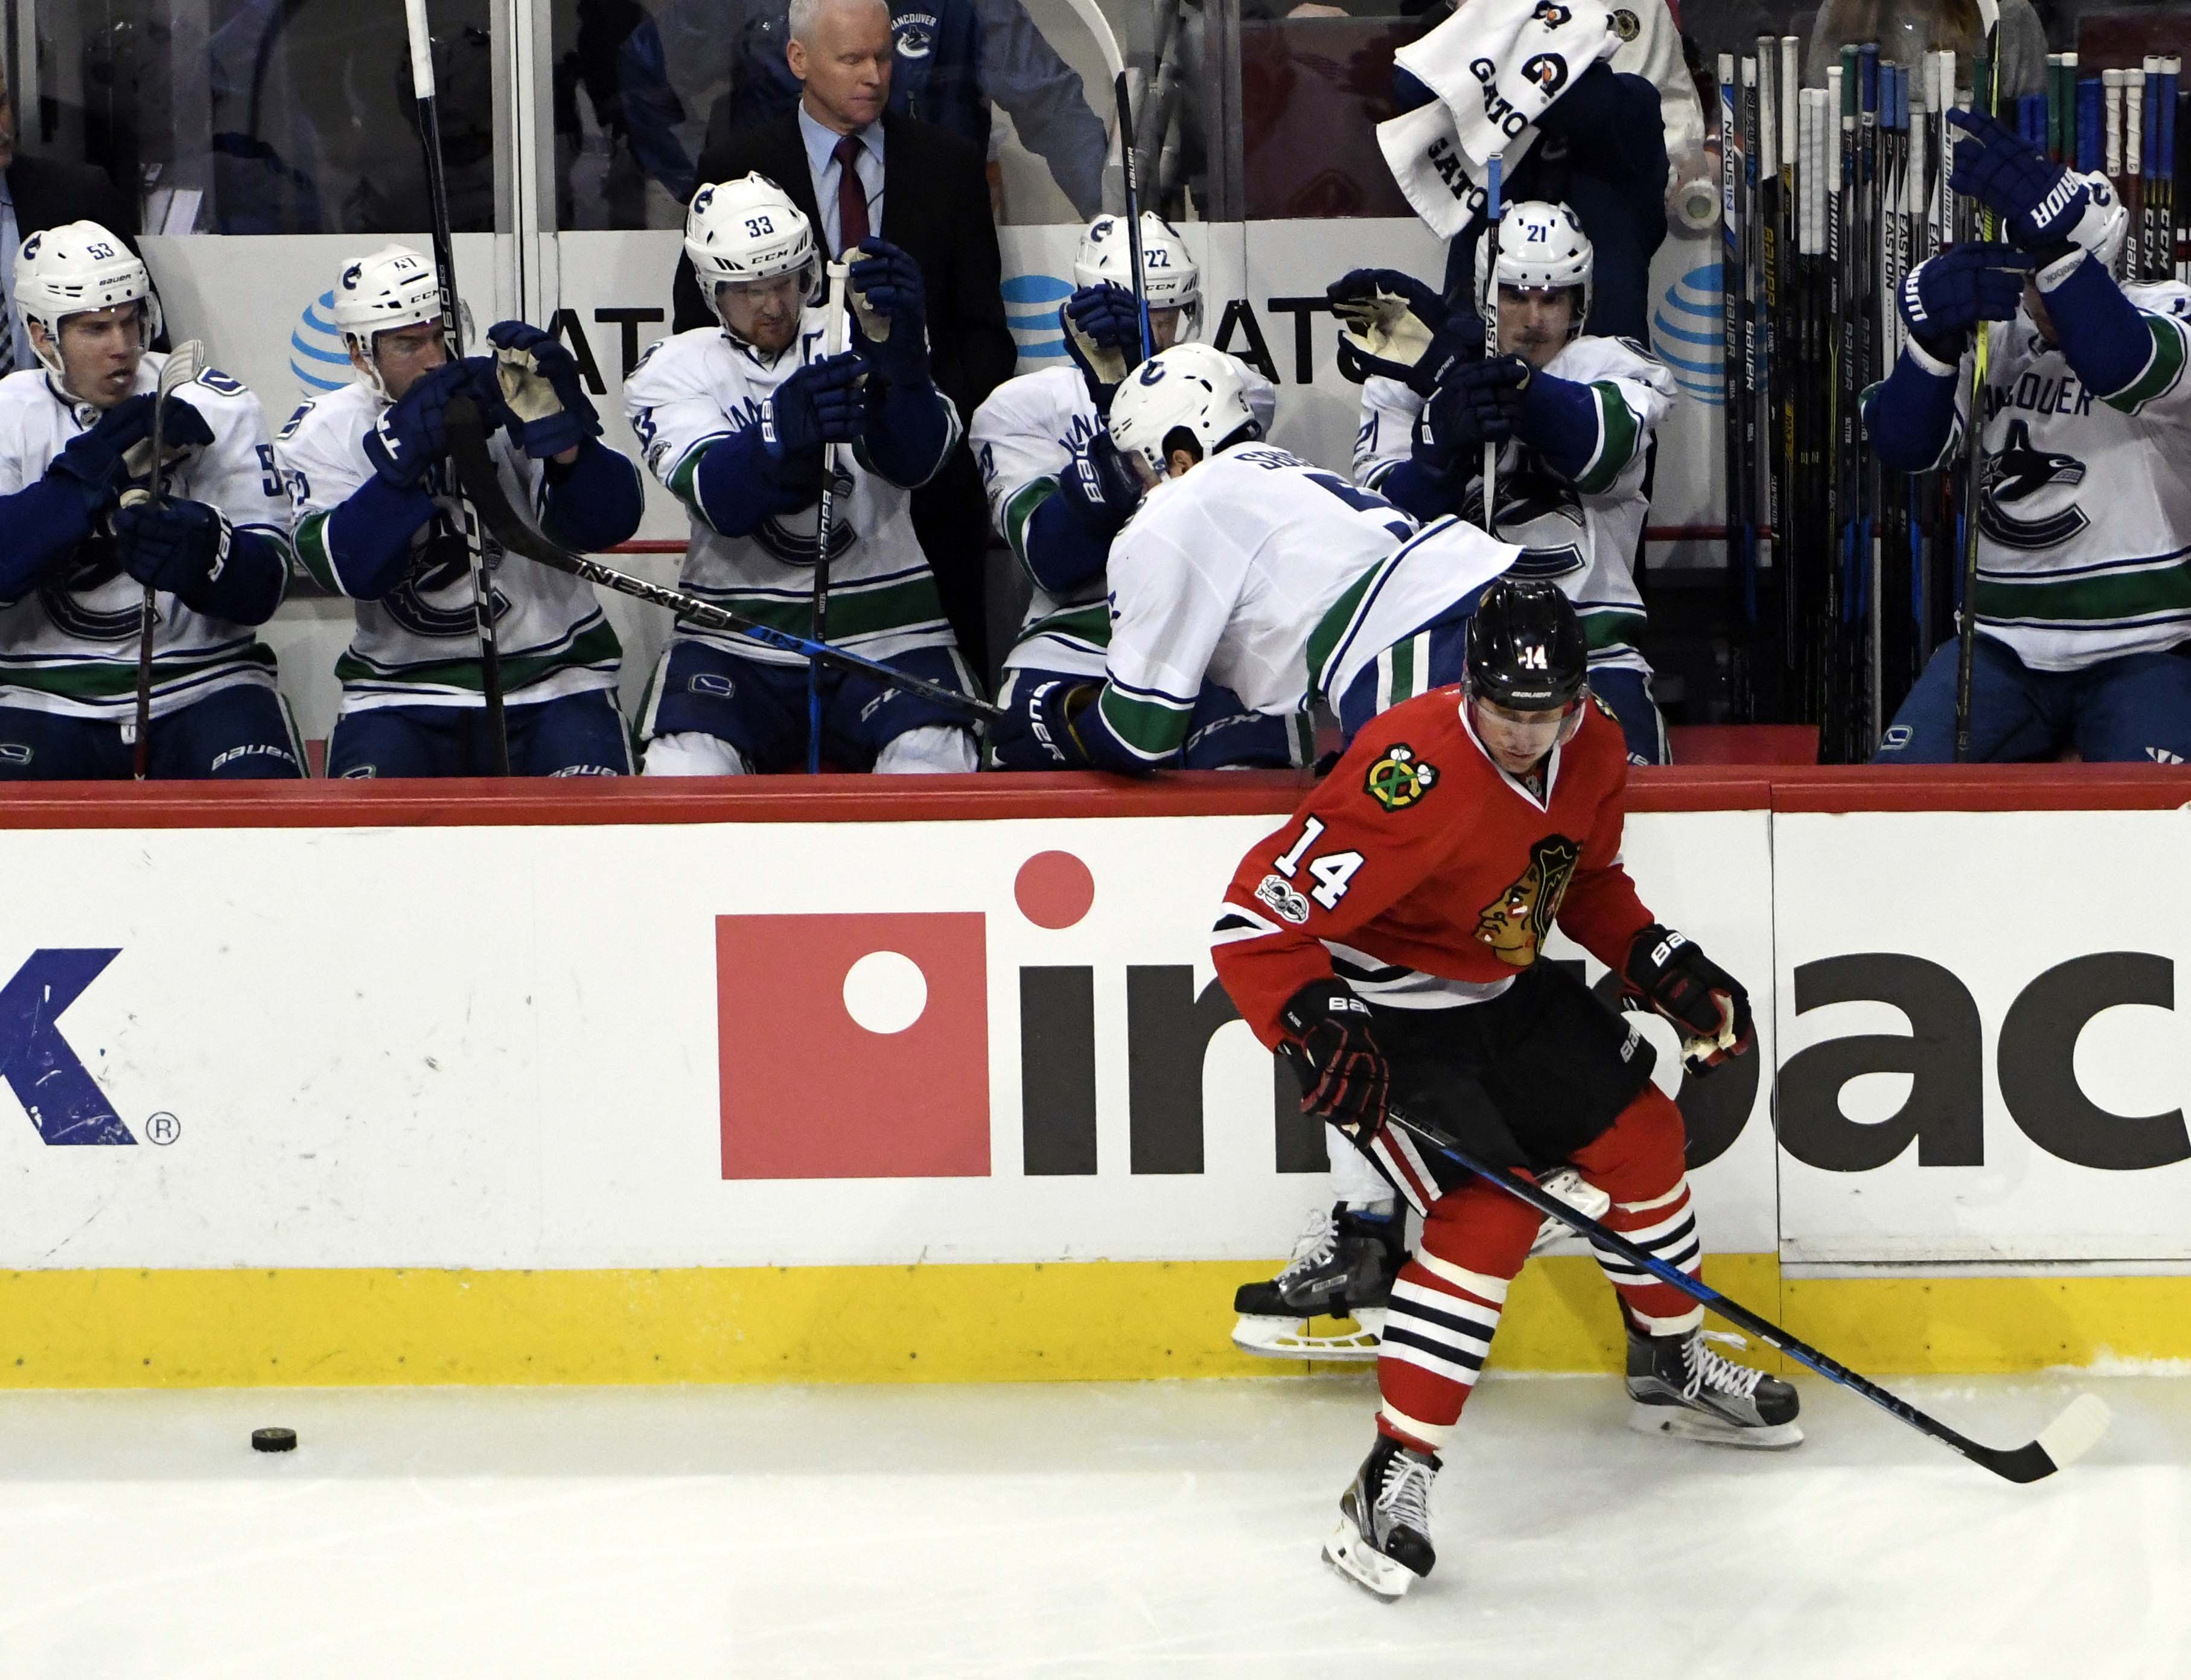 9832854-nhl-vancouver-canucks-at-chicago-blackhawks